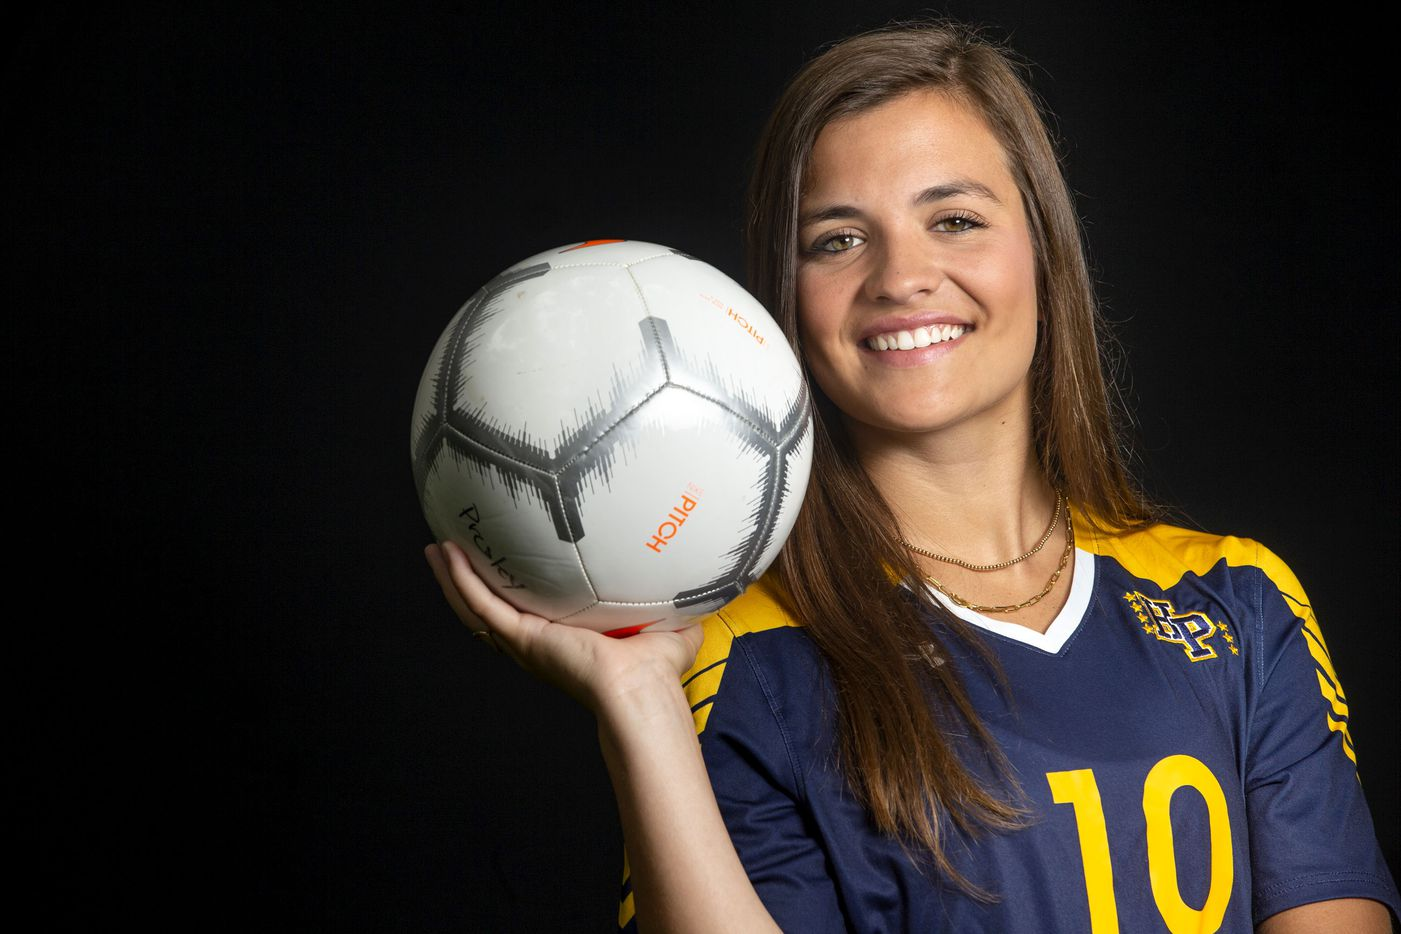 Highland Park senior soccer player Presley Echols poses for a portrait at her home in Highland Park on Tuesday, May 12, 2020. Echols is The Dallas Morning News Girls Soccer Player of the Year.